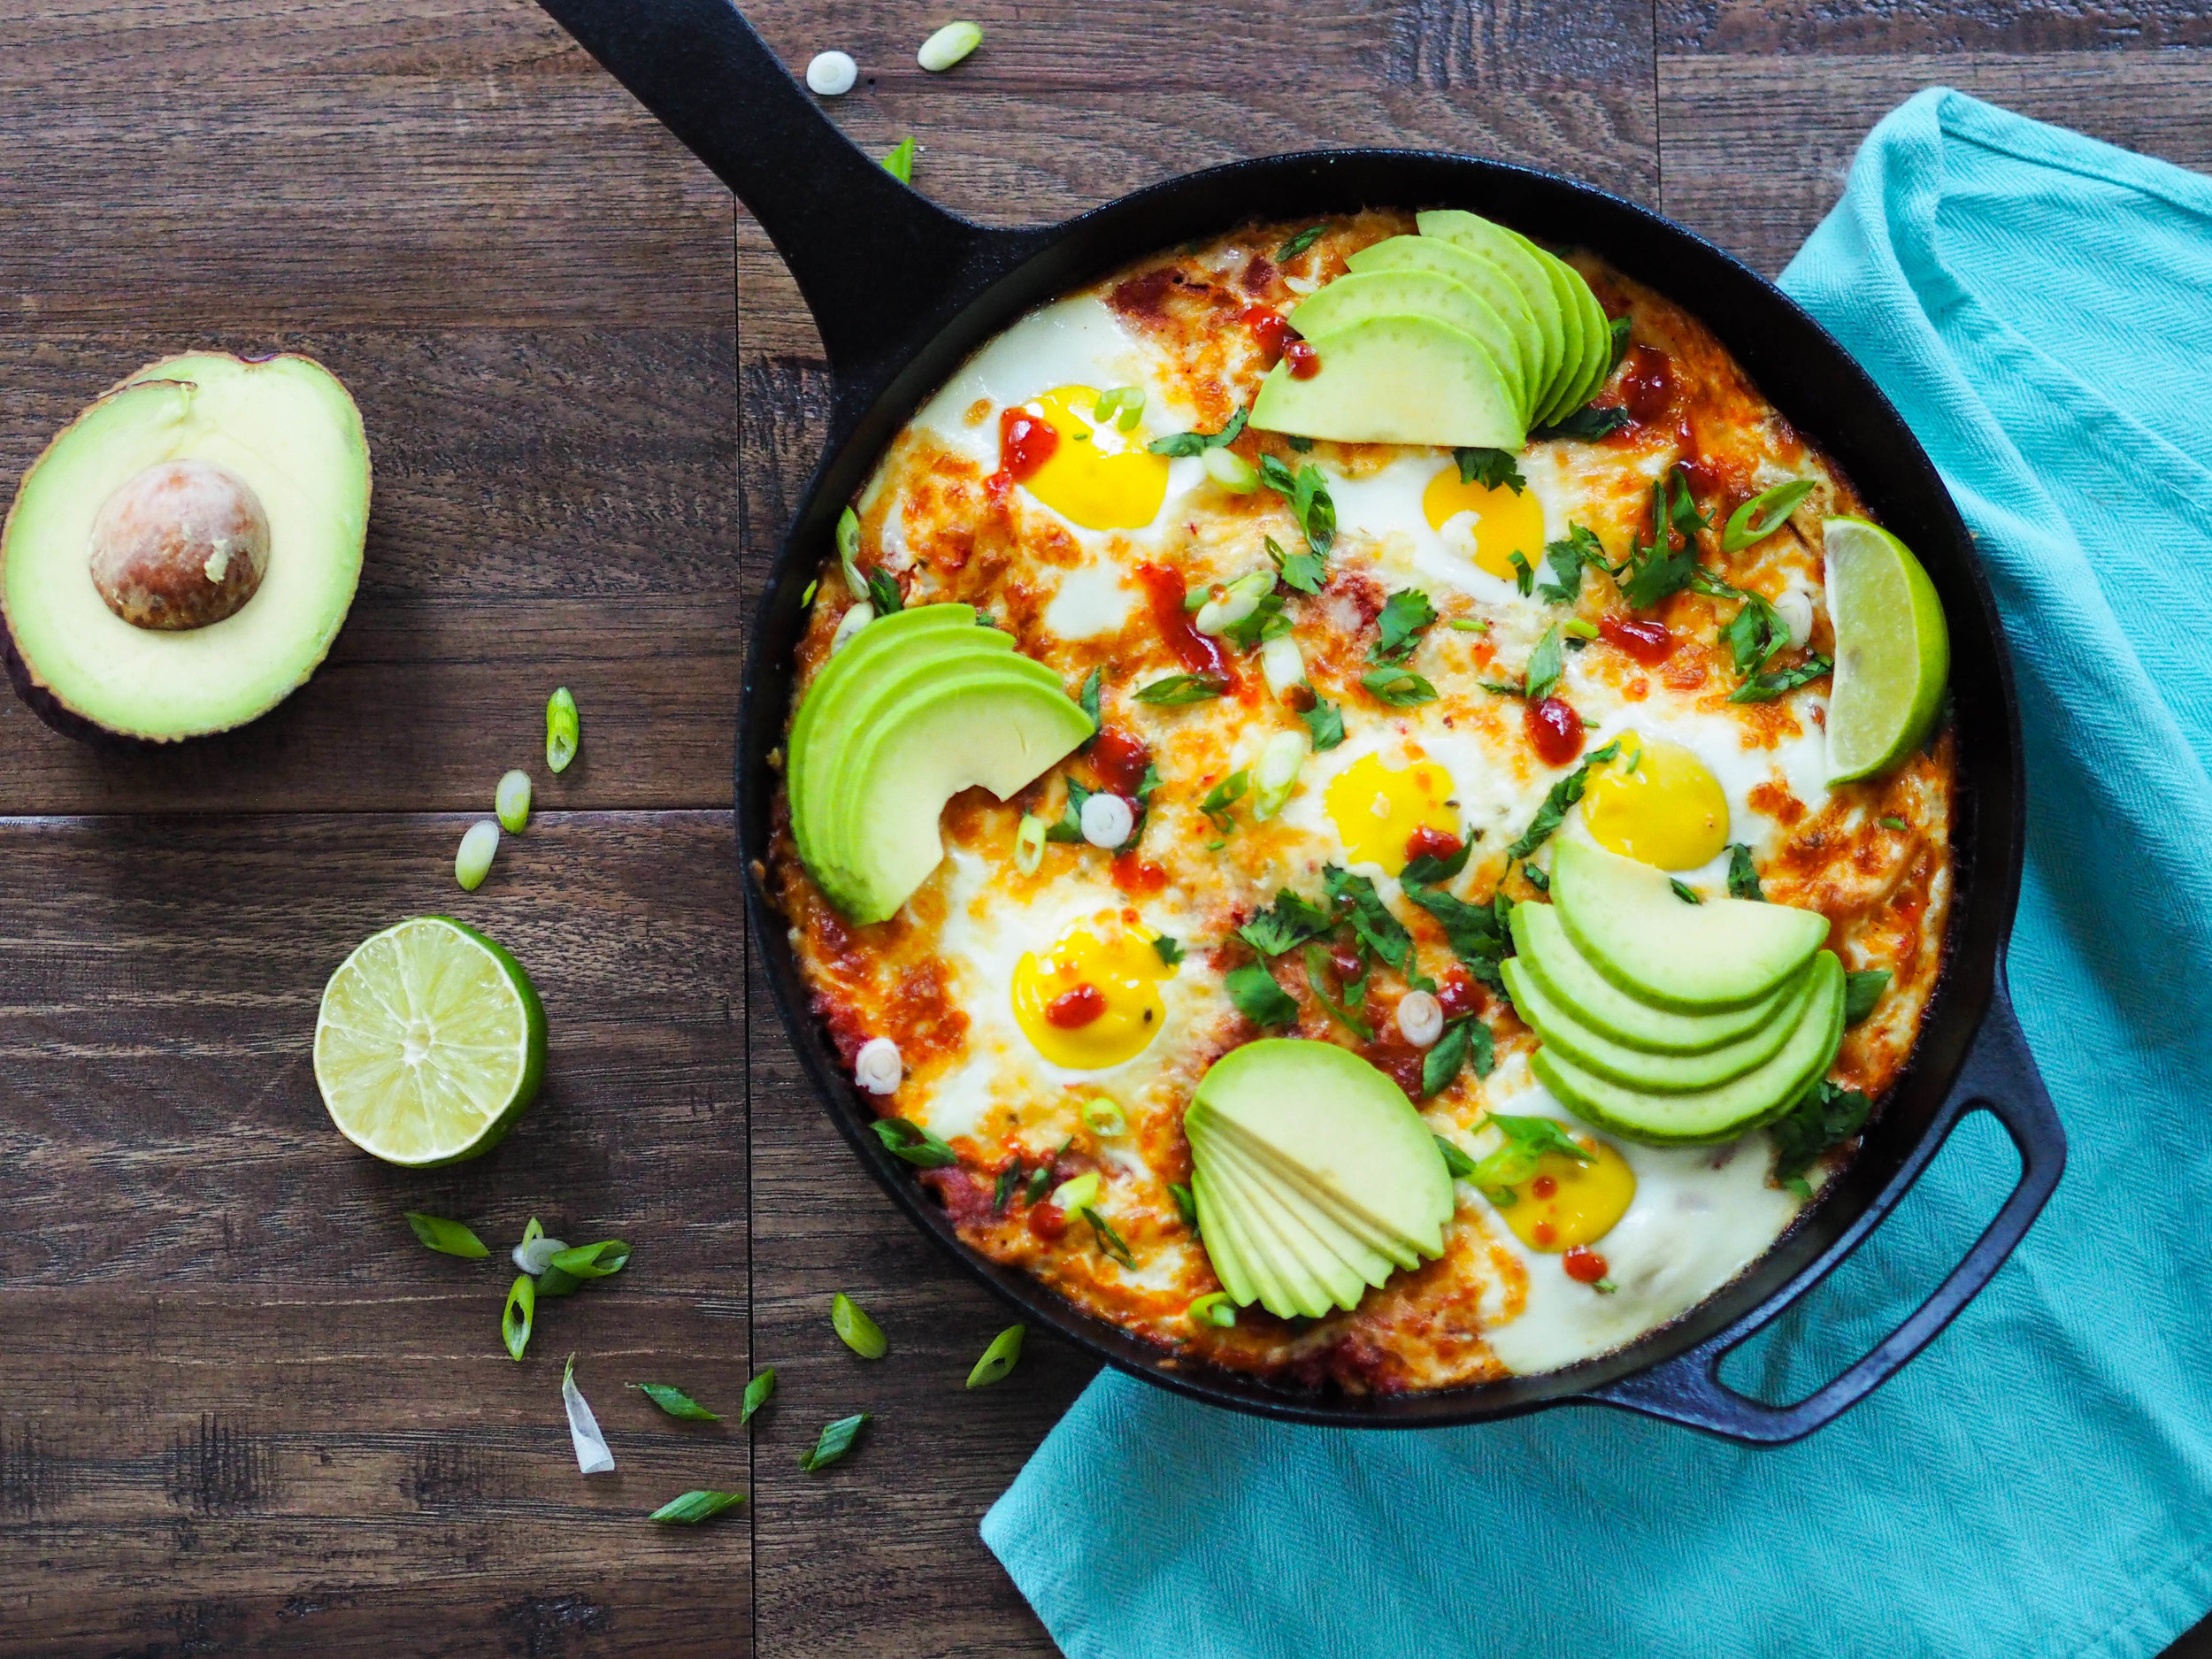 spicy-baked-eggs-and-tortillas-2.jpg